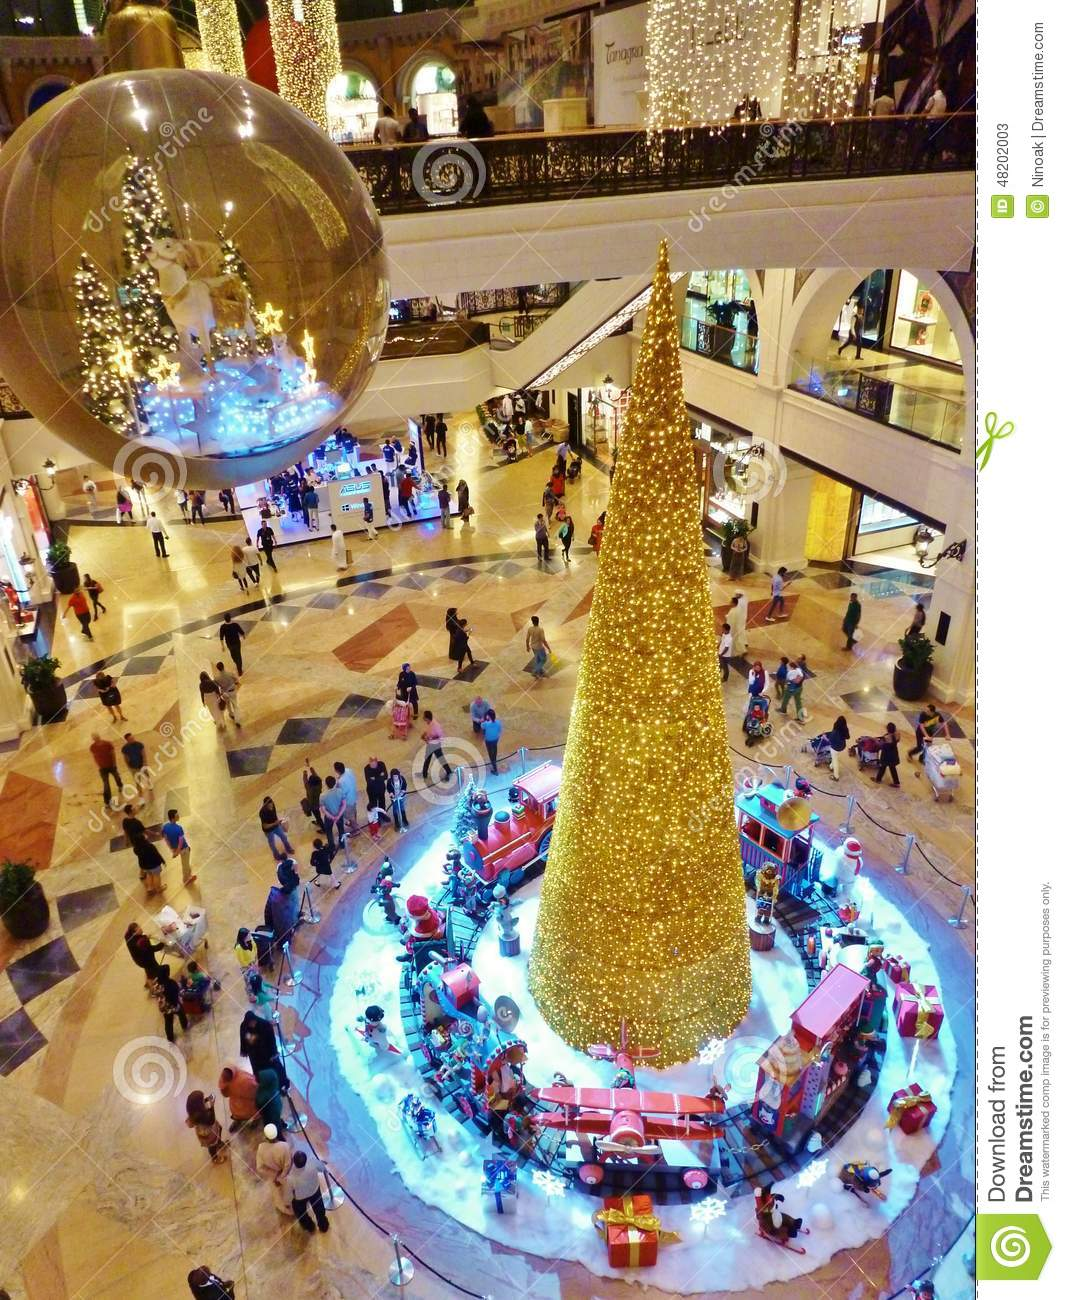 Christmas Tree In Emirates Mall Dubai Editorial Stock. Christmas Tree Decorations For Large Trees. Donate Christmas Decorations Houston. Decorating With Ornaments For Christmas. Christmas Light And Decorations. 12 Days Of Christmas Decorations For Tree. Christmas Door Decorations Religious. Decorations Used In France For Christmas. Christmas Table Decorations With Mason Jars